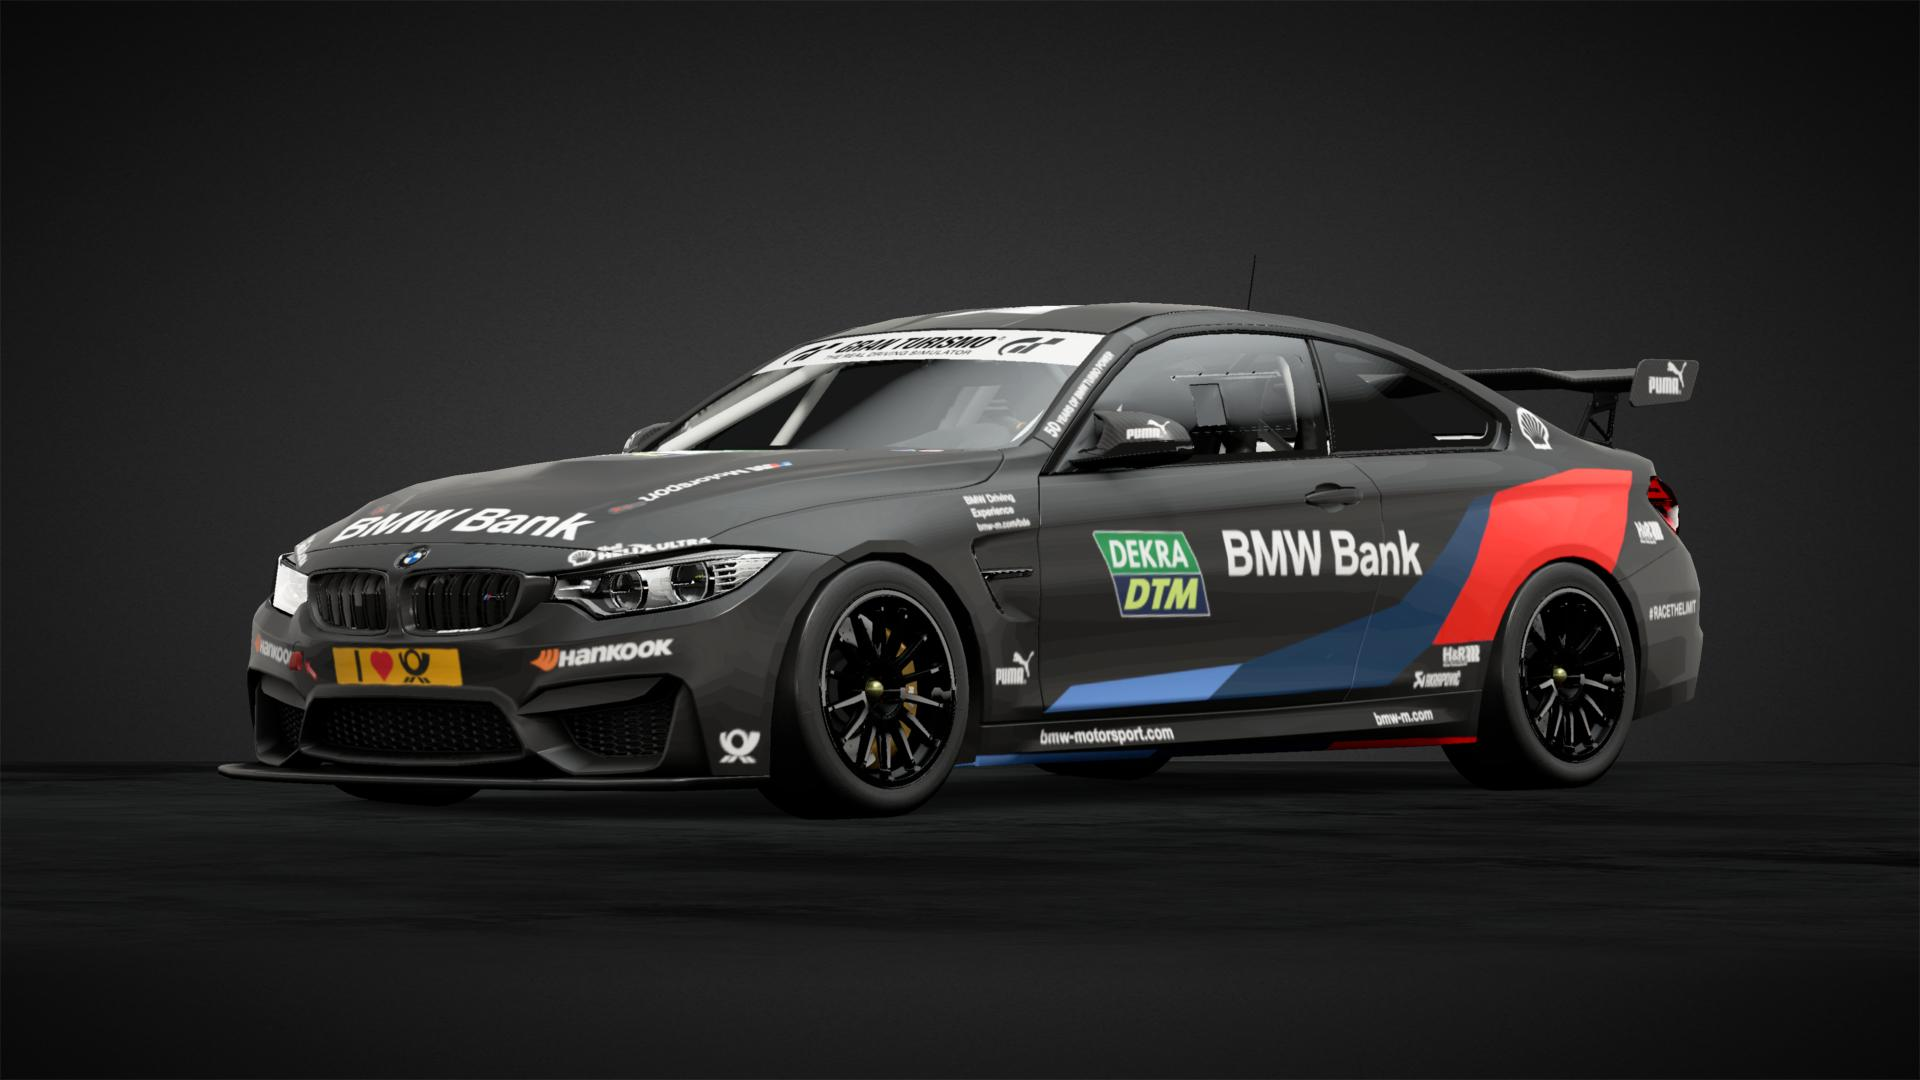 7 Bmw Bank M4 Dtm 19 Car Livery By Soulphat8 Community Gran Turismo Sport